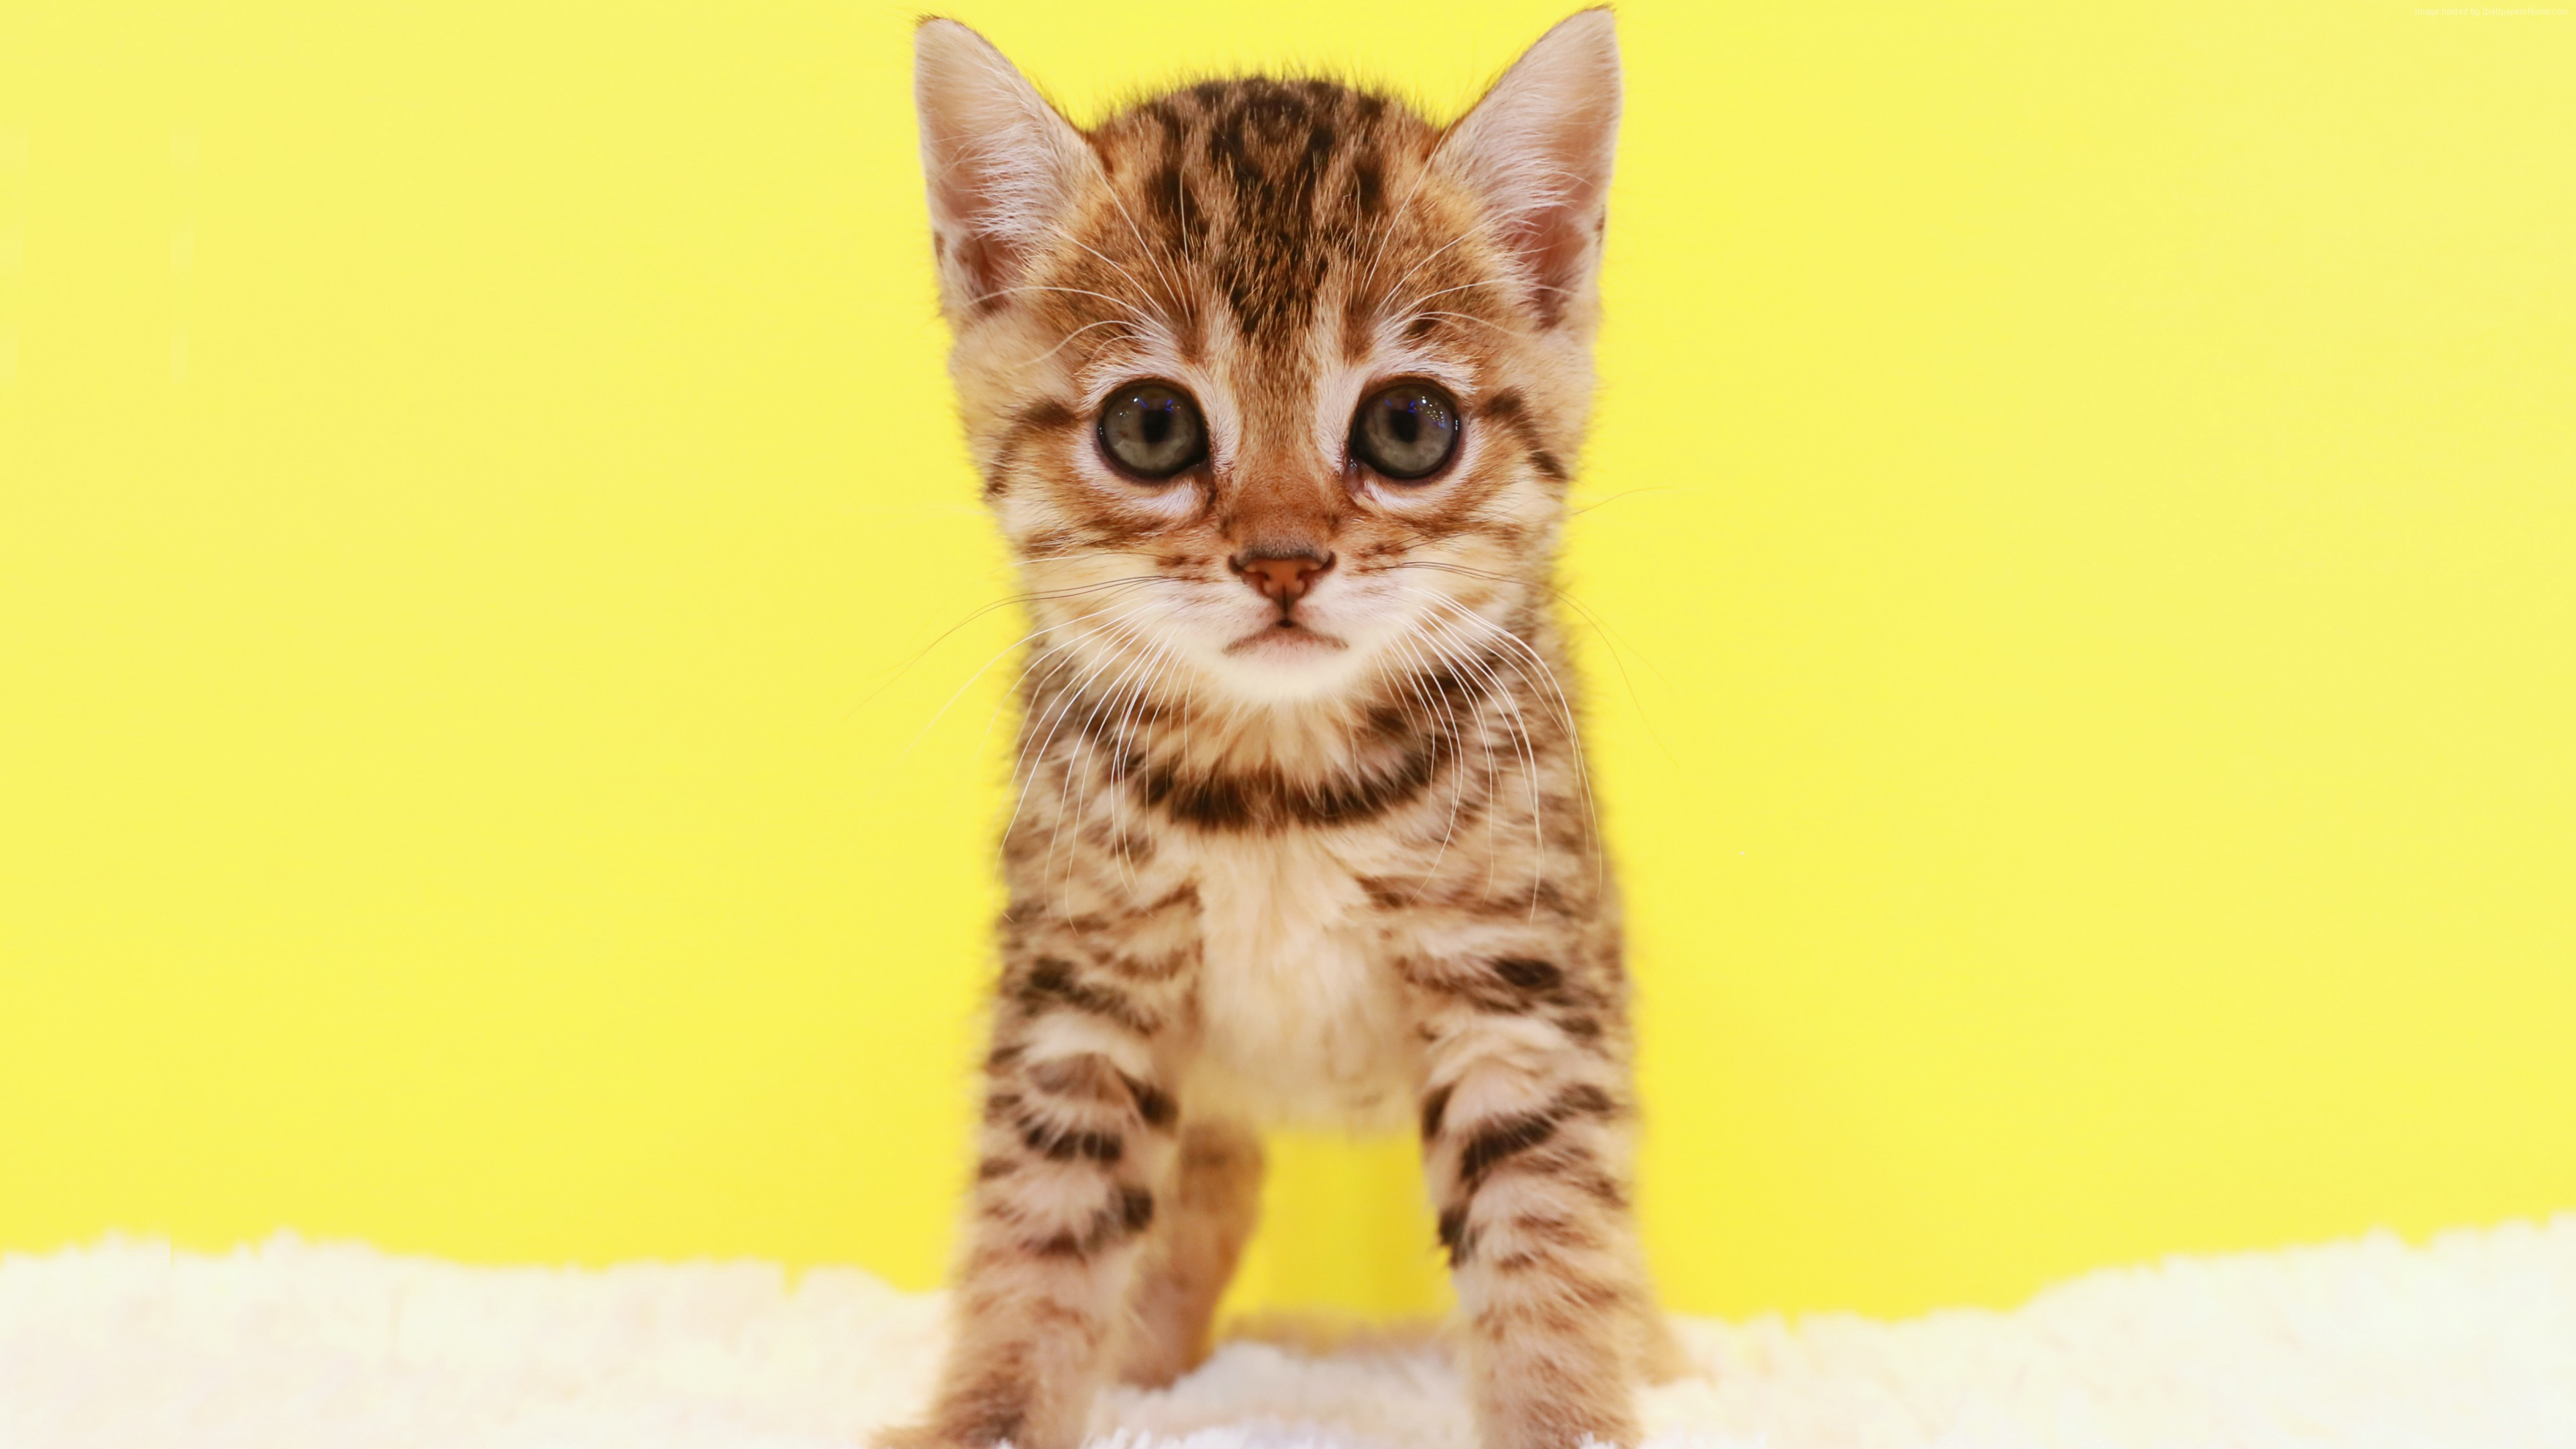 Stock Images kitten, cat, cute, 5k, Stock Images